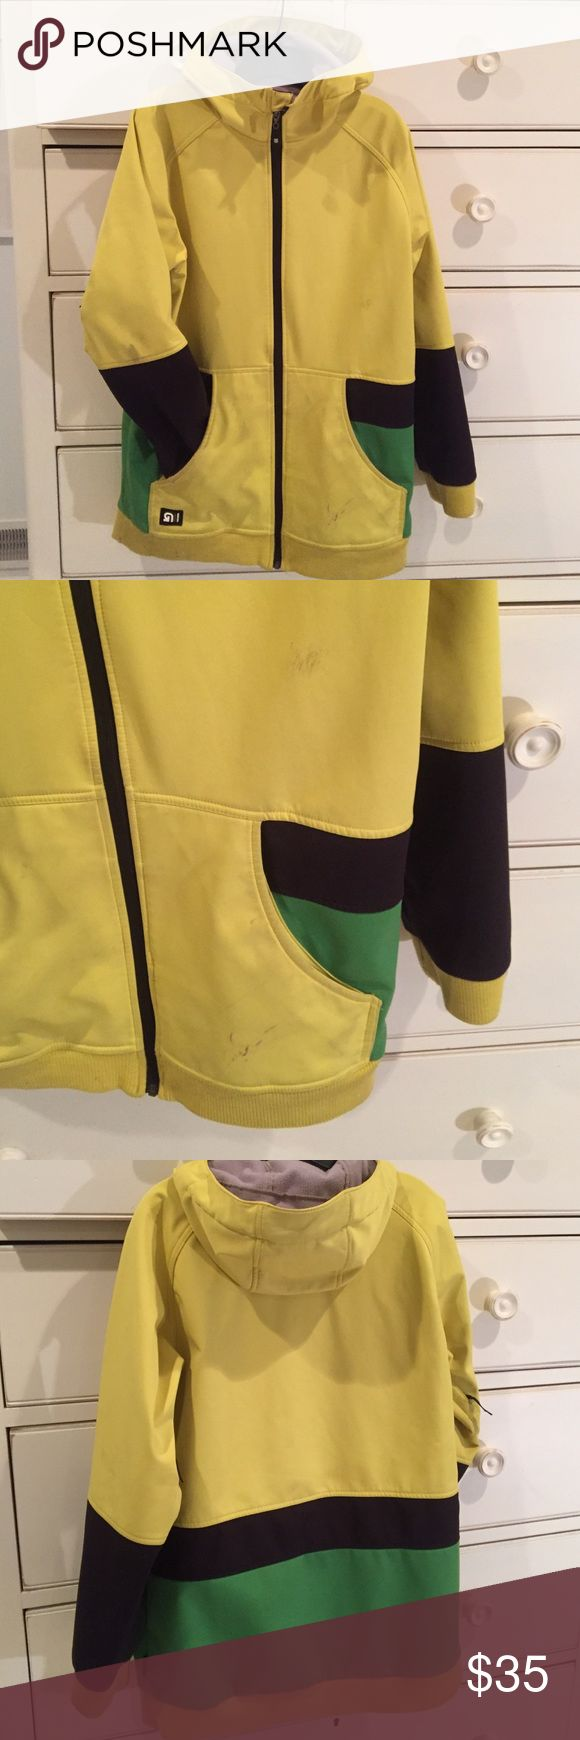 Burton ski jacket dryride Used condition. Front zip pockets. Vents under arms. Fleece lining. Hood. Yellow black green. Longer snowboard style.   Snaps inside to attach pants. Burton Jackets & Coats Performance Jackets